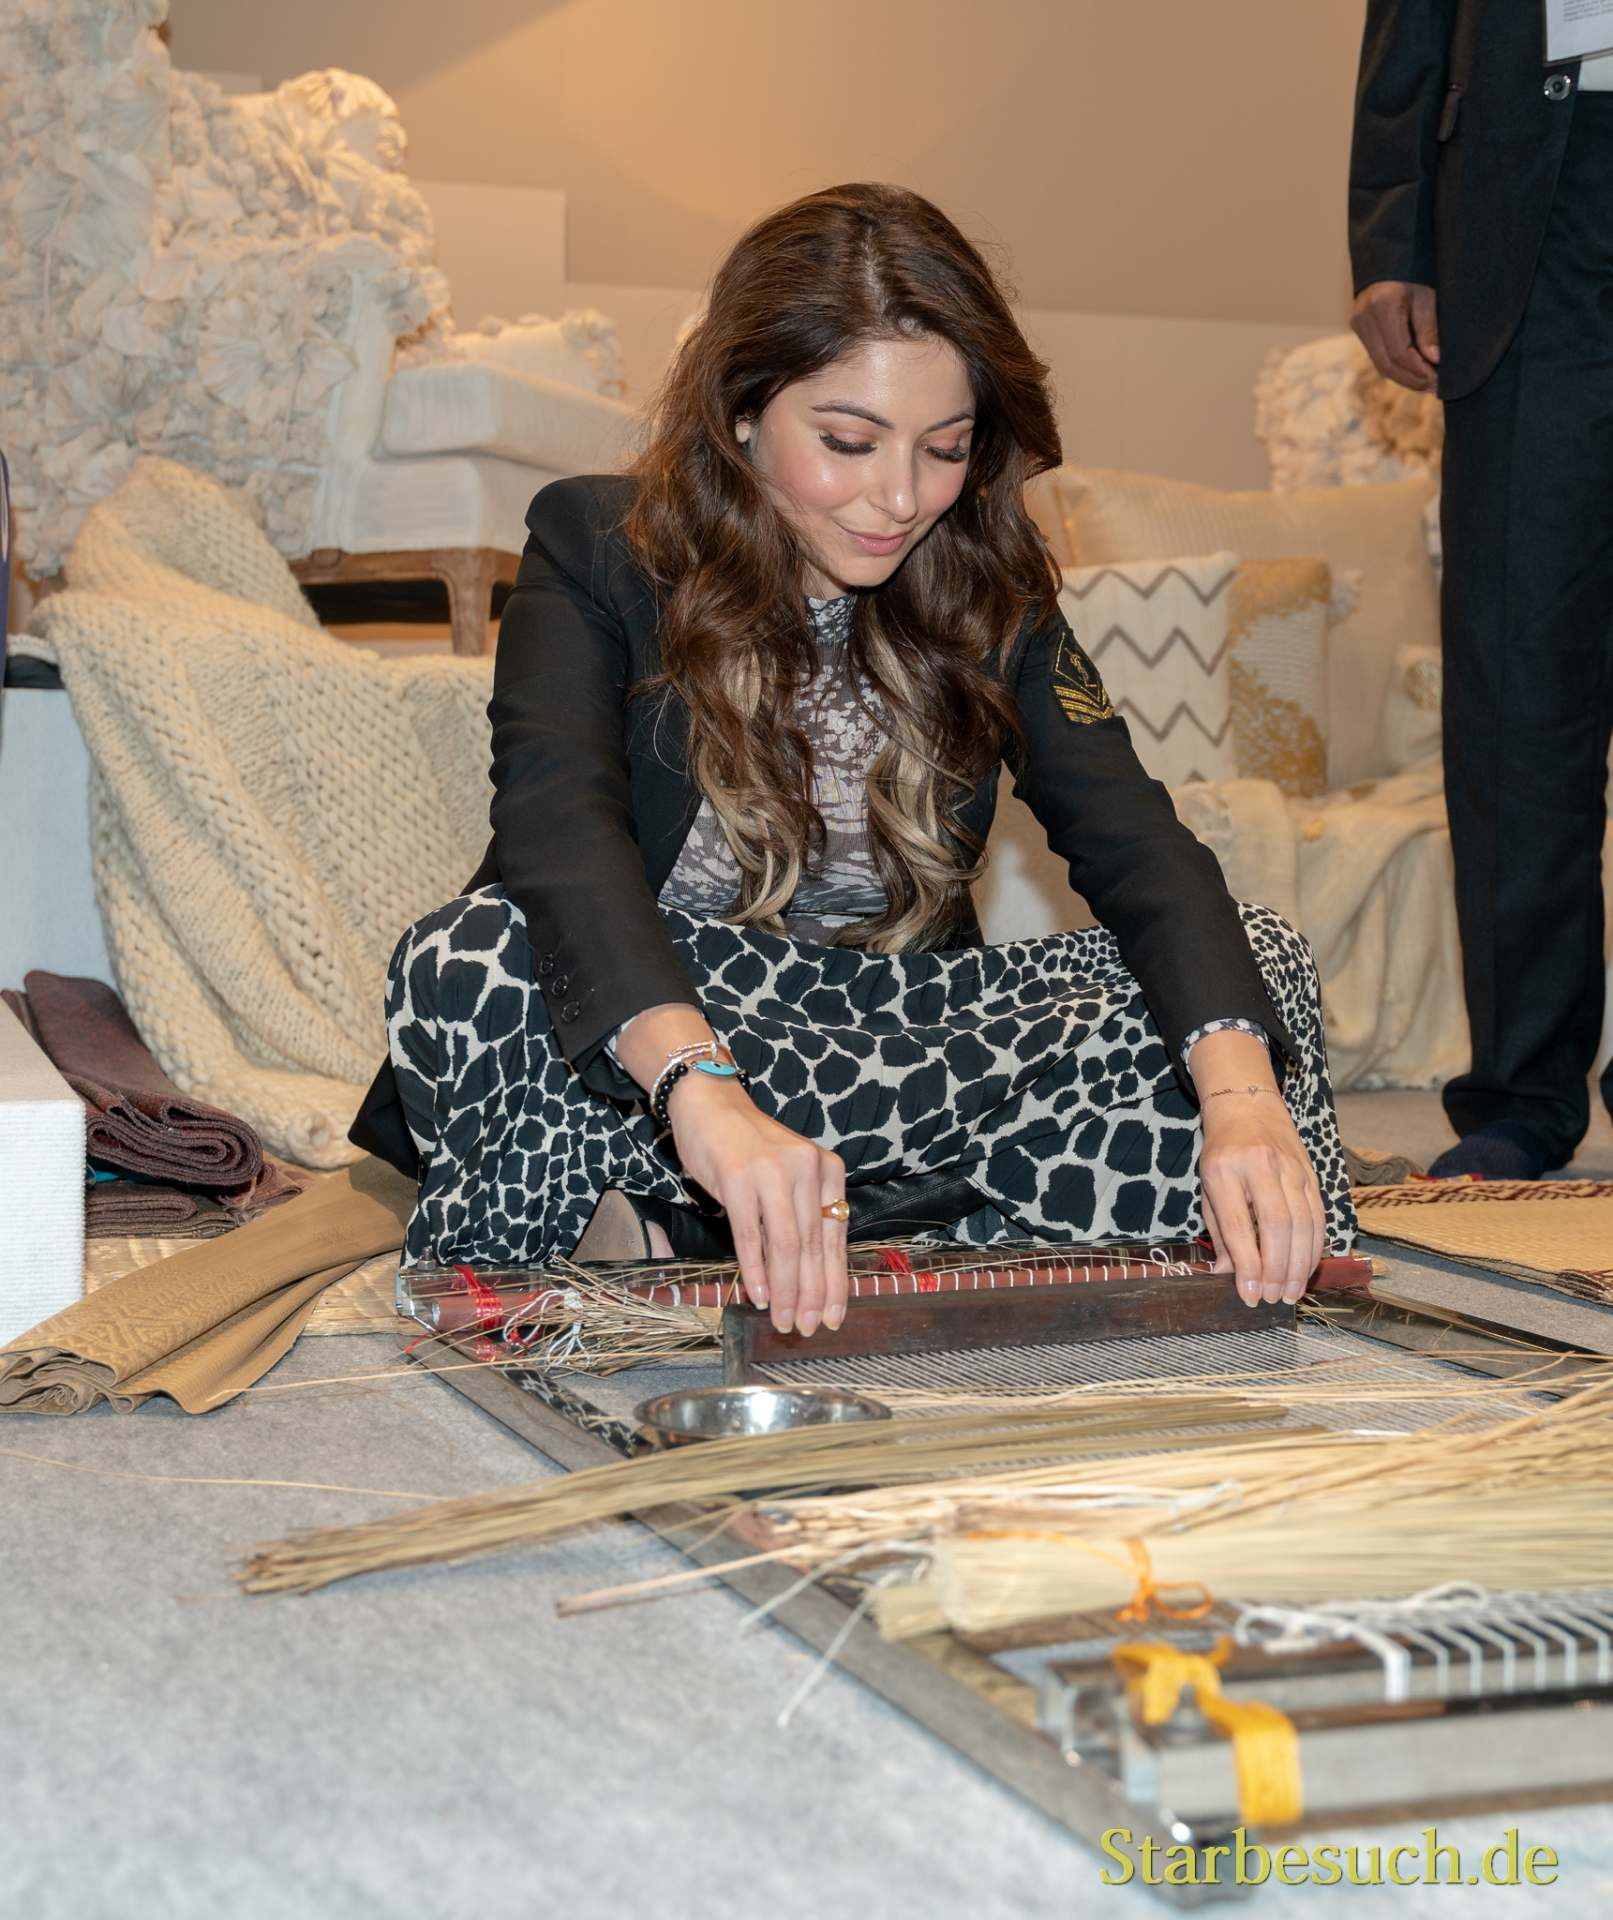 Frankfurt, Germany. 11th Feb 2019. Kanika Kapoor, singer, bollywood star and The Voice India Coach visits Ambiente trade fair 2019. Ambiente is a ld's leading consumer goods trade fair with more than 4300 exhibitors and 130,000+ trade visitors.